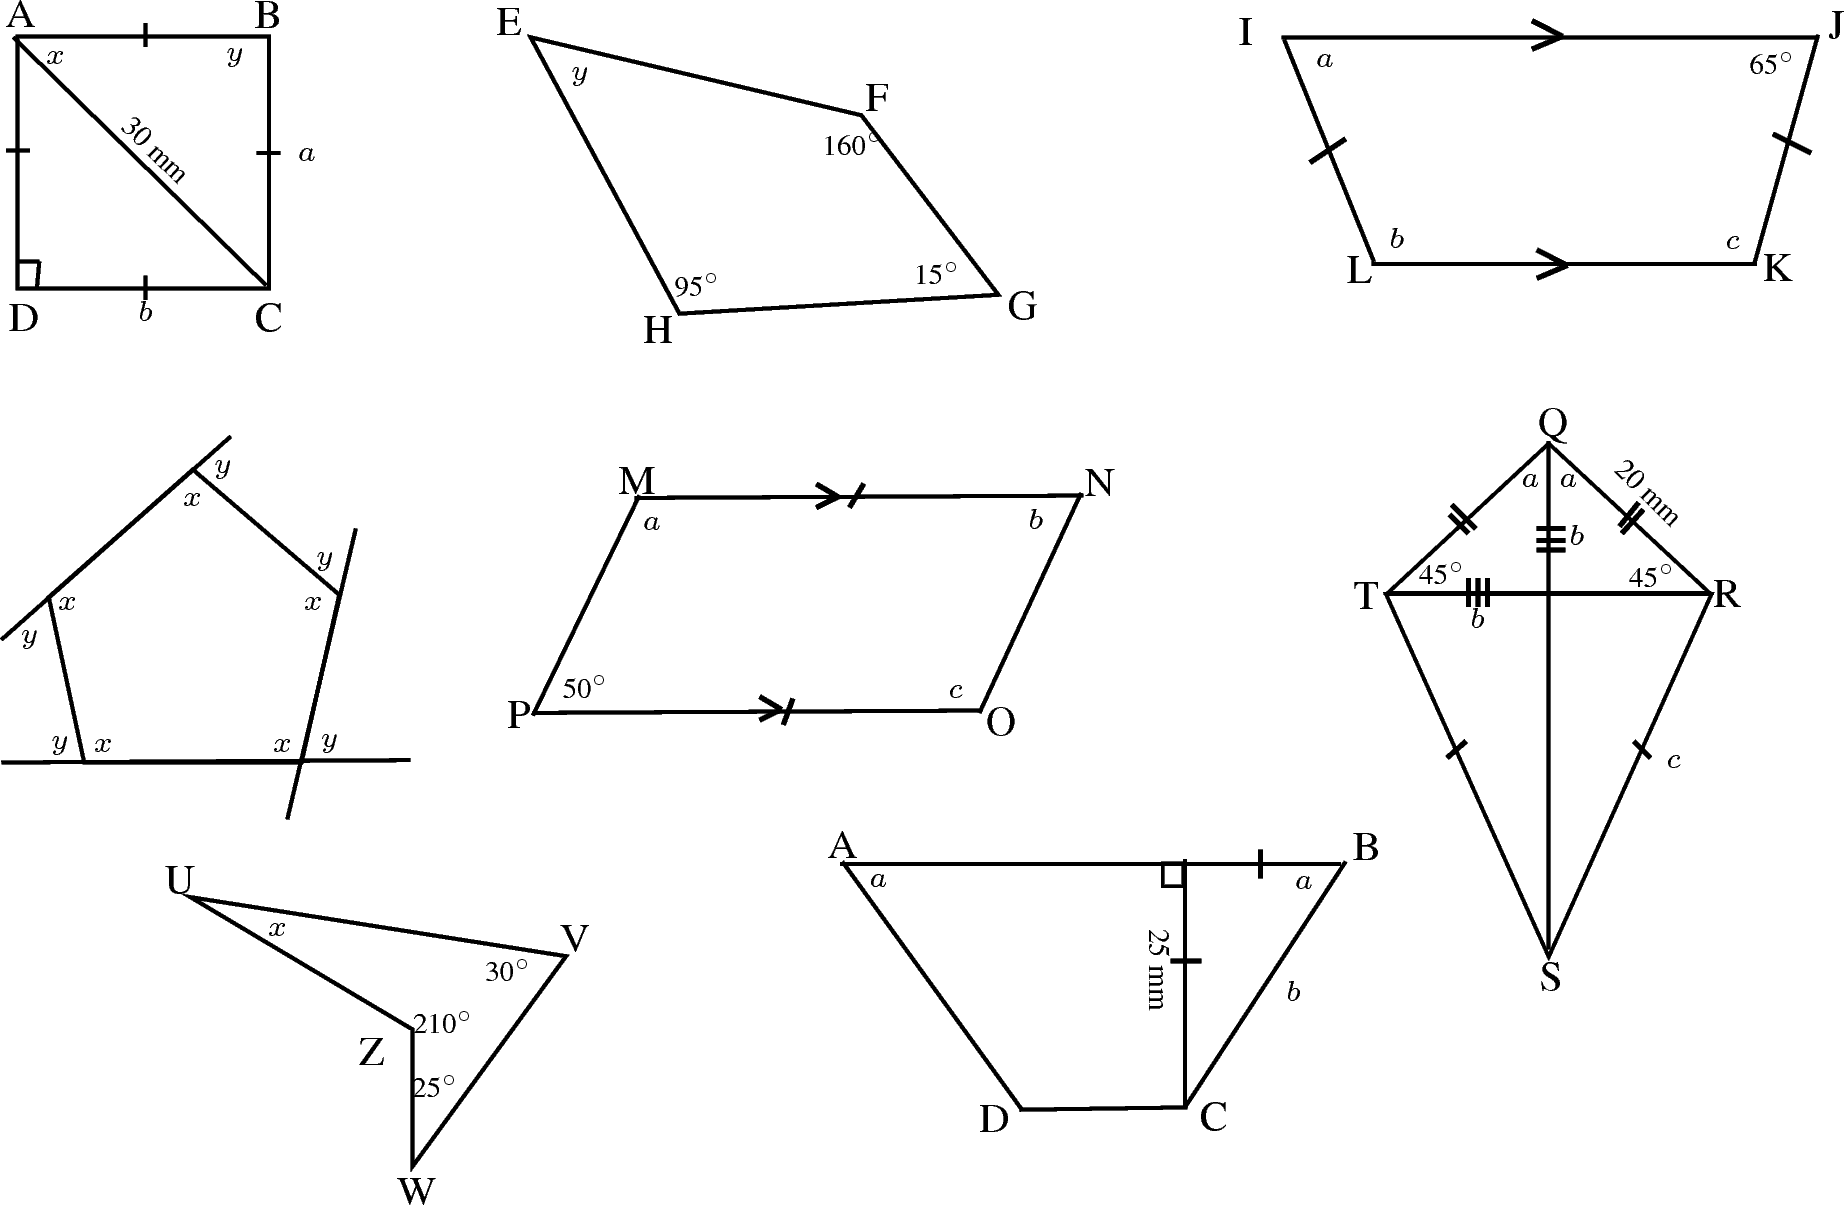 3d Shapes Worksheets Printable moreover 6df81078 85a7 4faf 85a6 52b47d645a5a 401 moreover Chapter20geometry in addition Similar Figures Worksheet With Answers moreover Similar Figures Test. on congruent and similar shapes worksheet